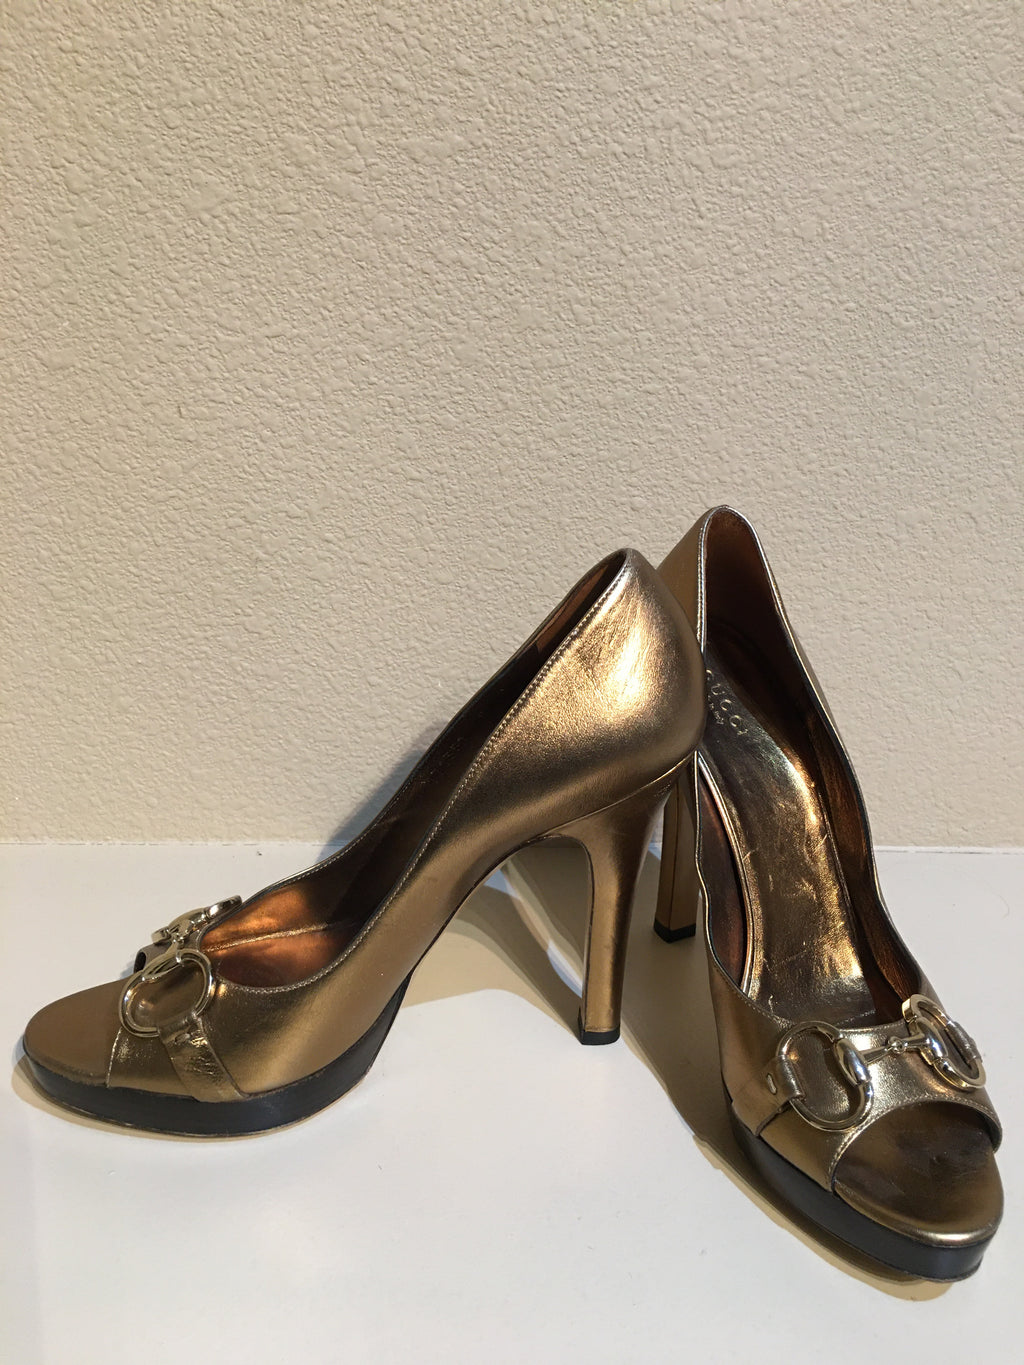 Gucci Metallic Horsebit Peep Toe Pump: Size 8